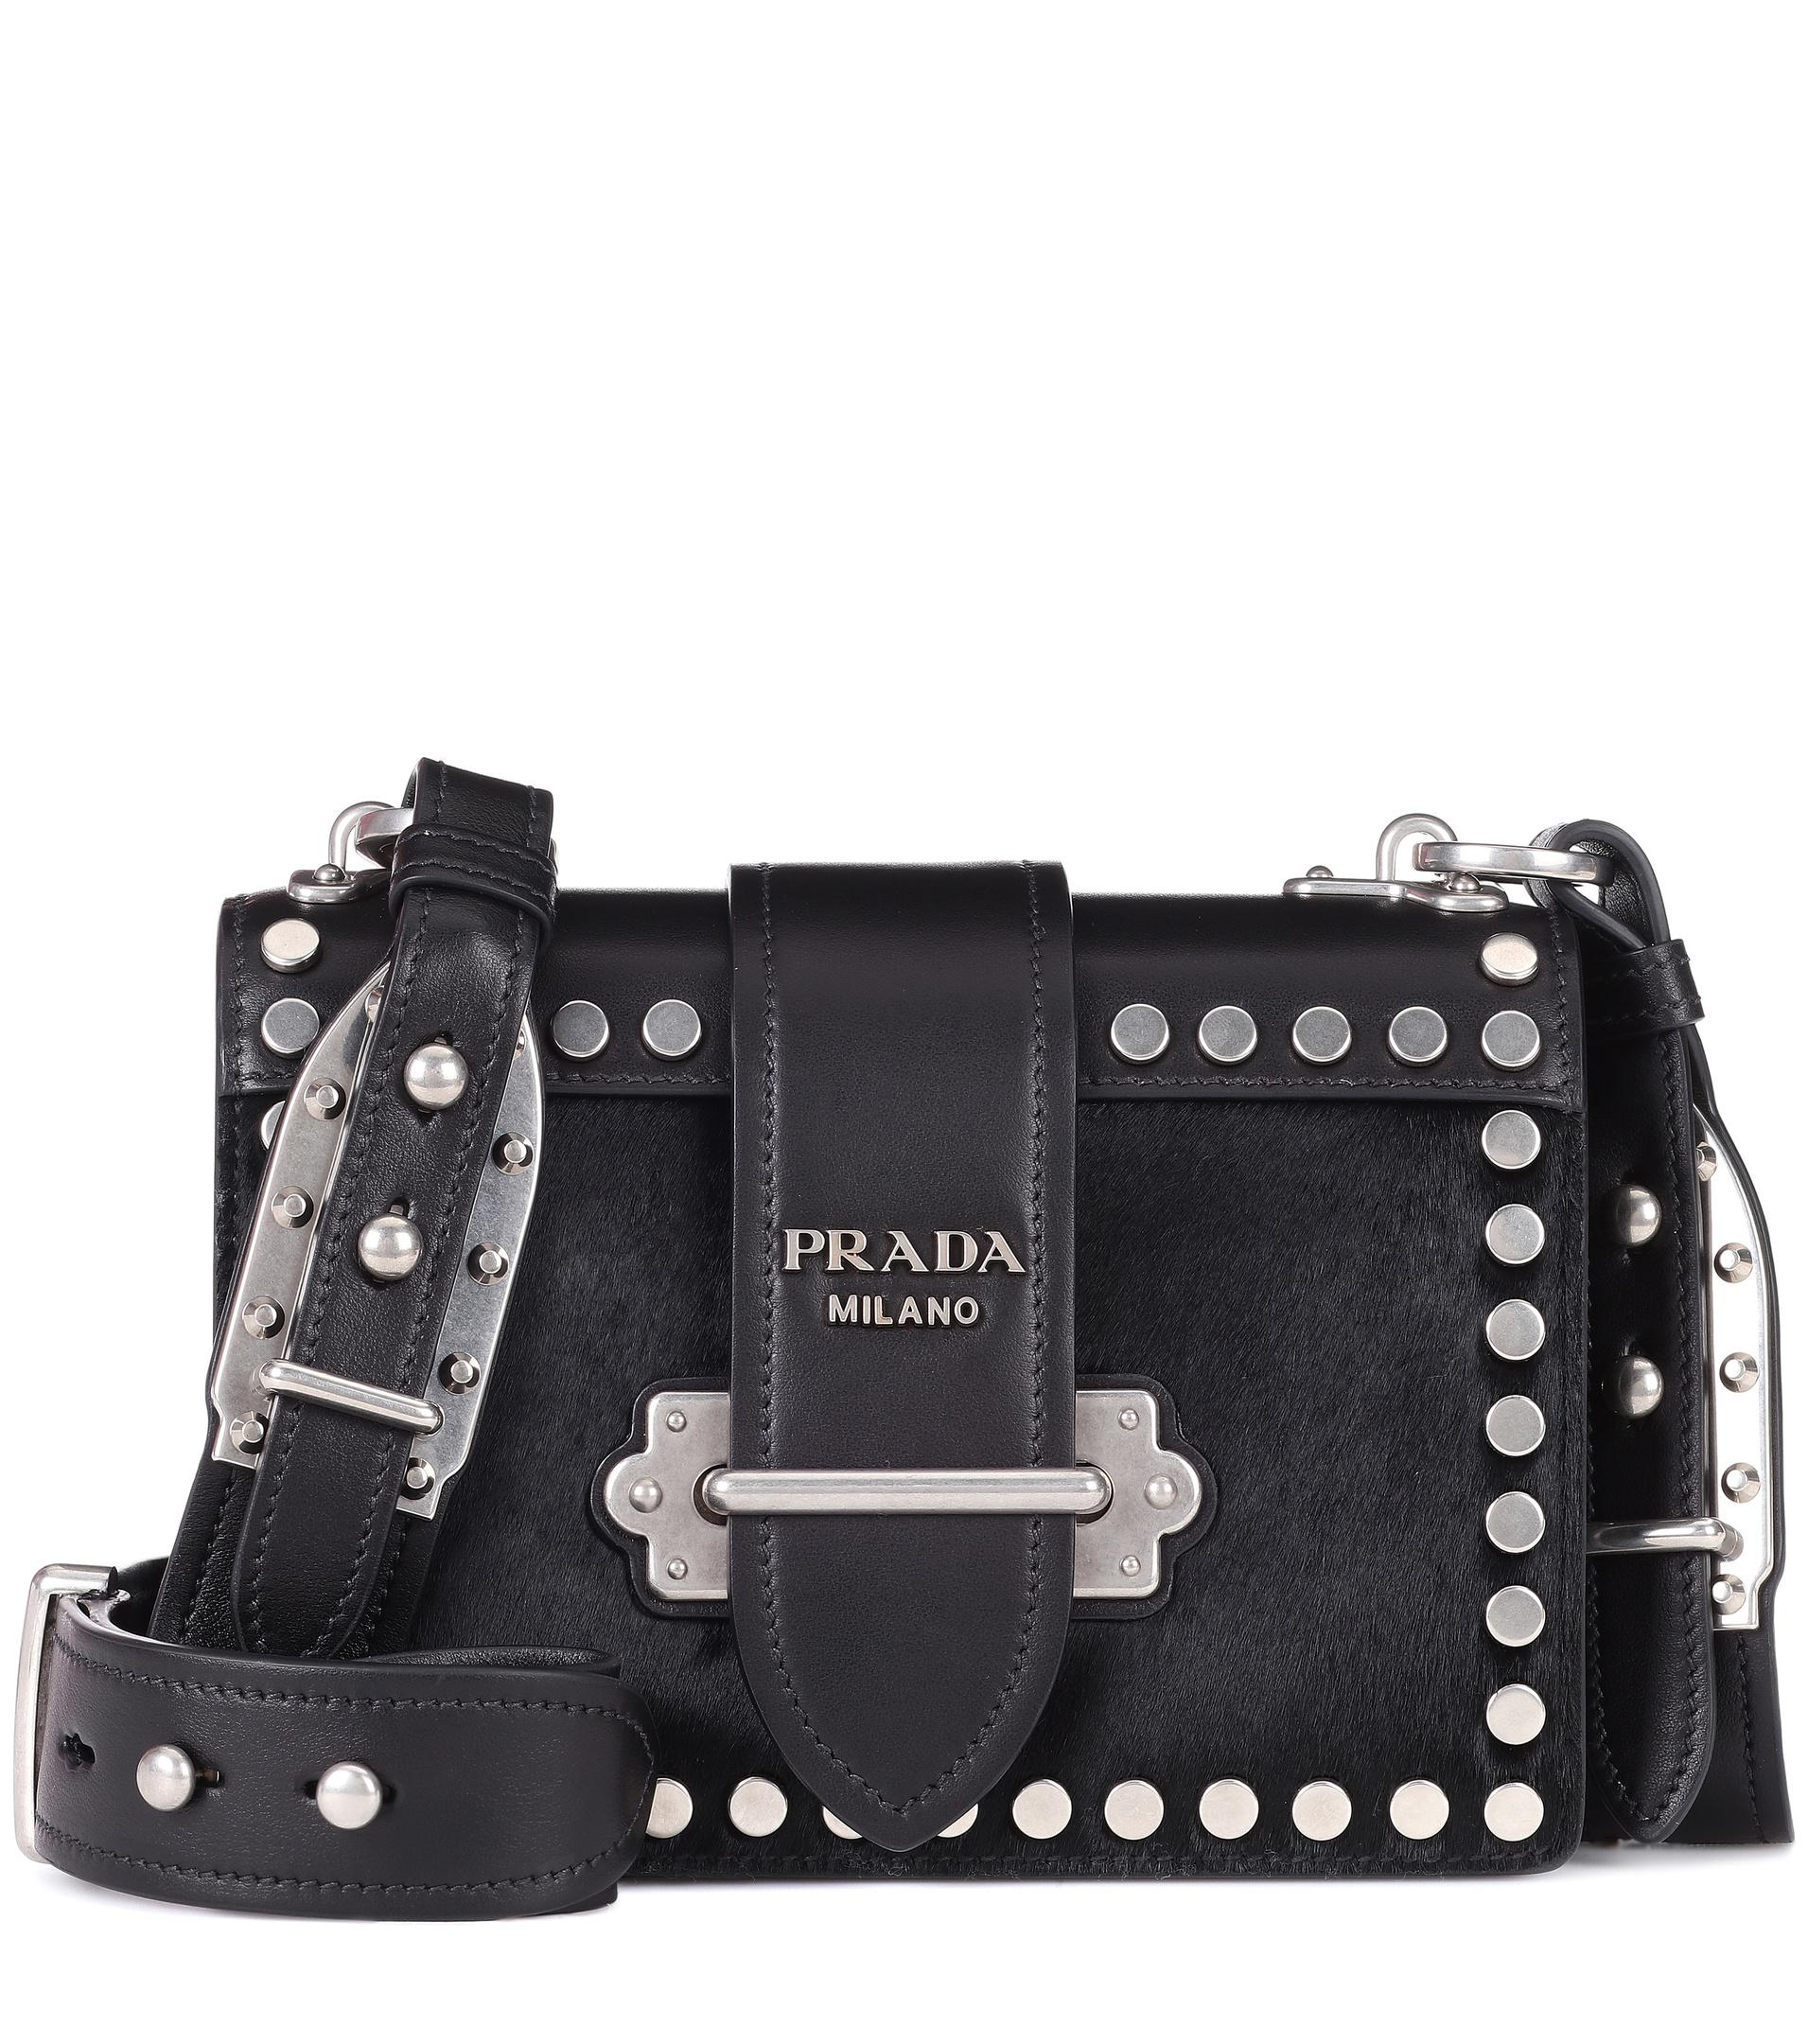 bbf2983783921d Prada Cahier Bag Nordstrom | Stanford Center for Opportunity Policy ...